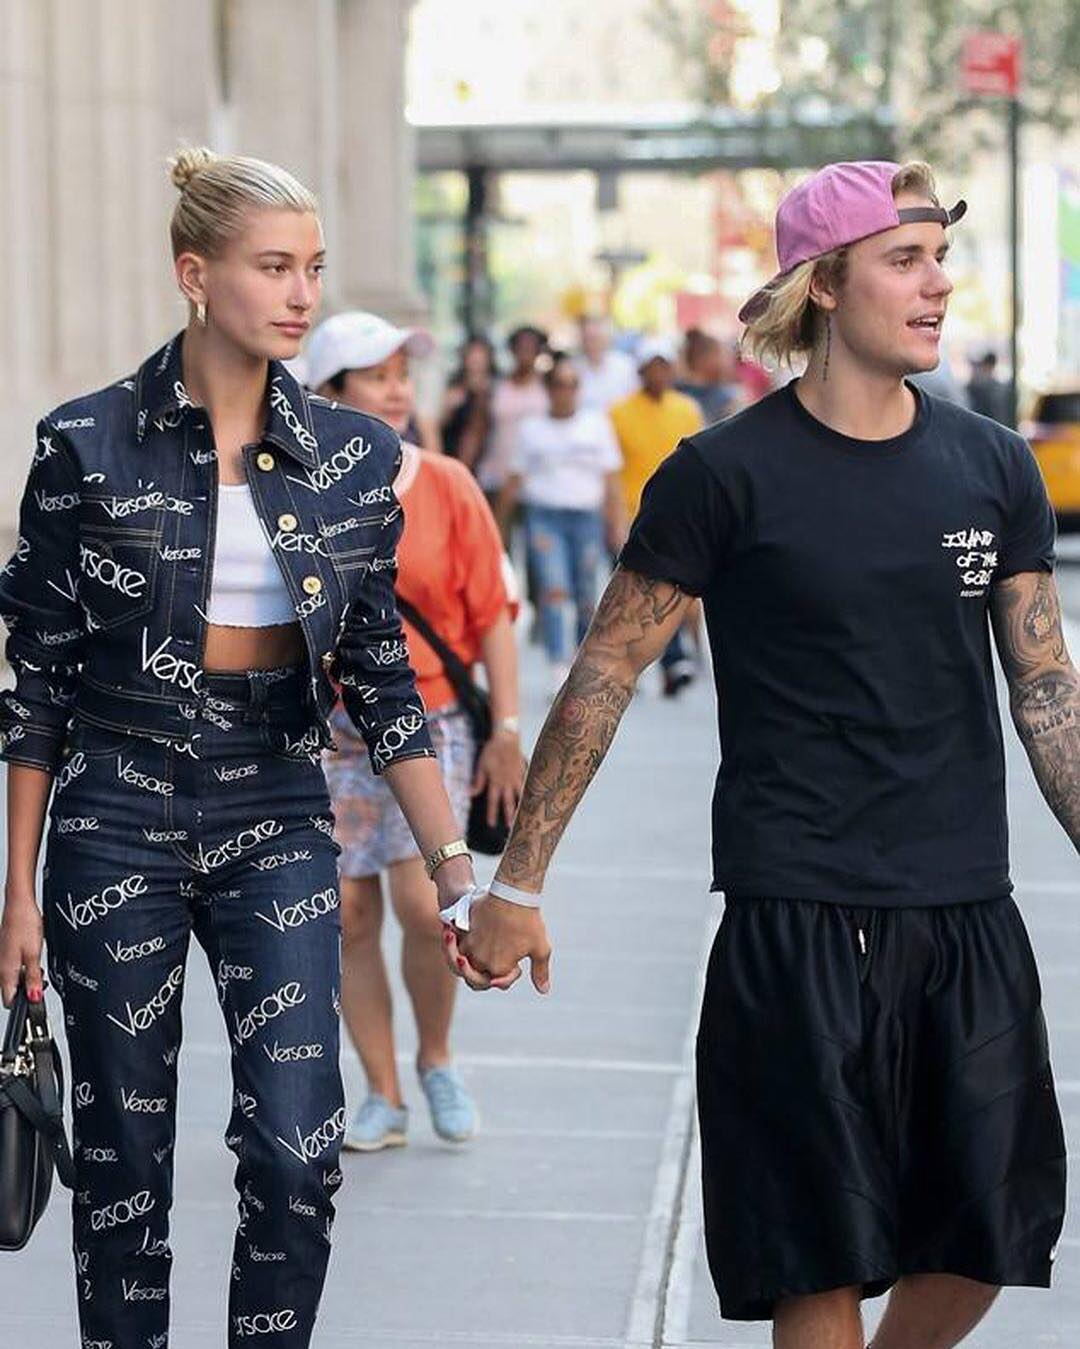 Justin Bieber and Hailey Baldwin are Engaged: US Media Reports